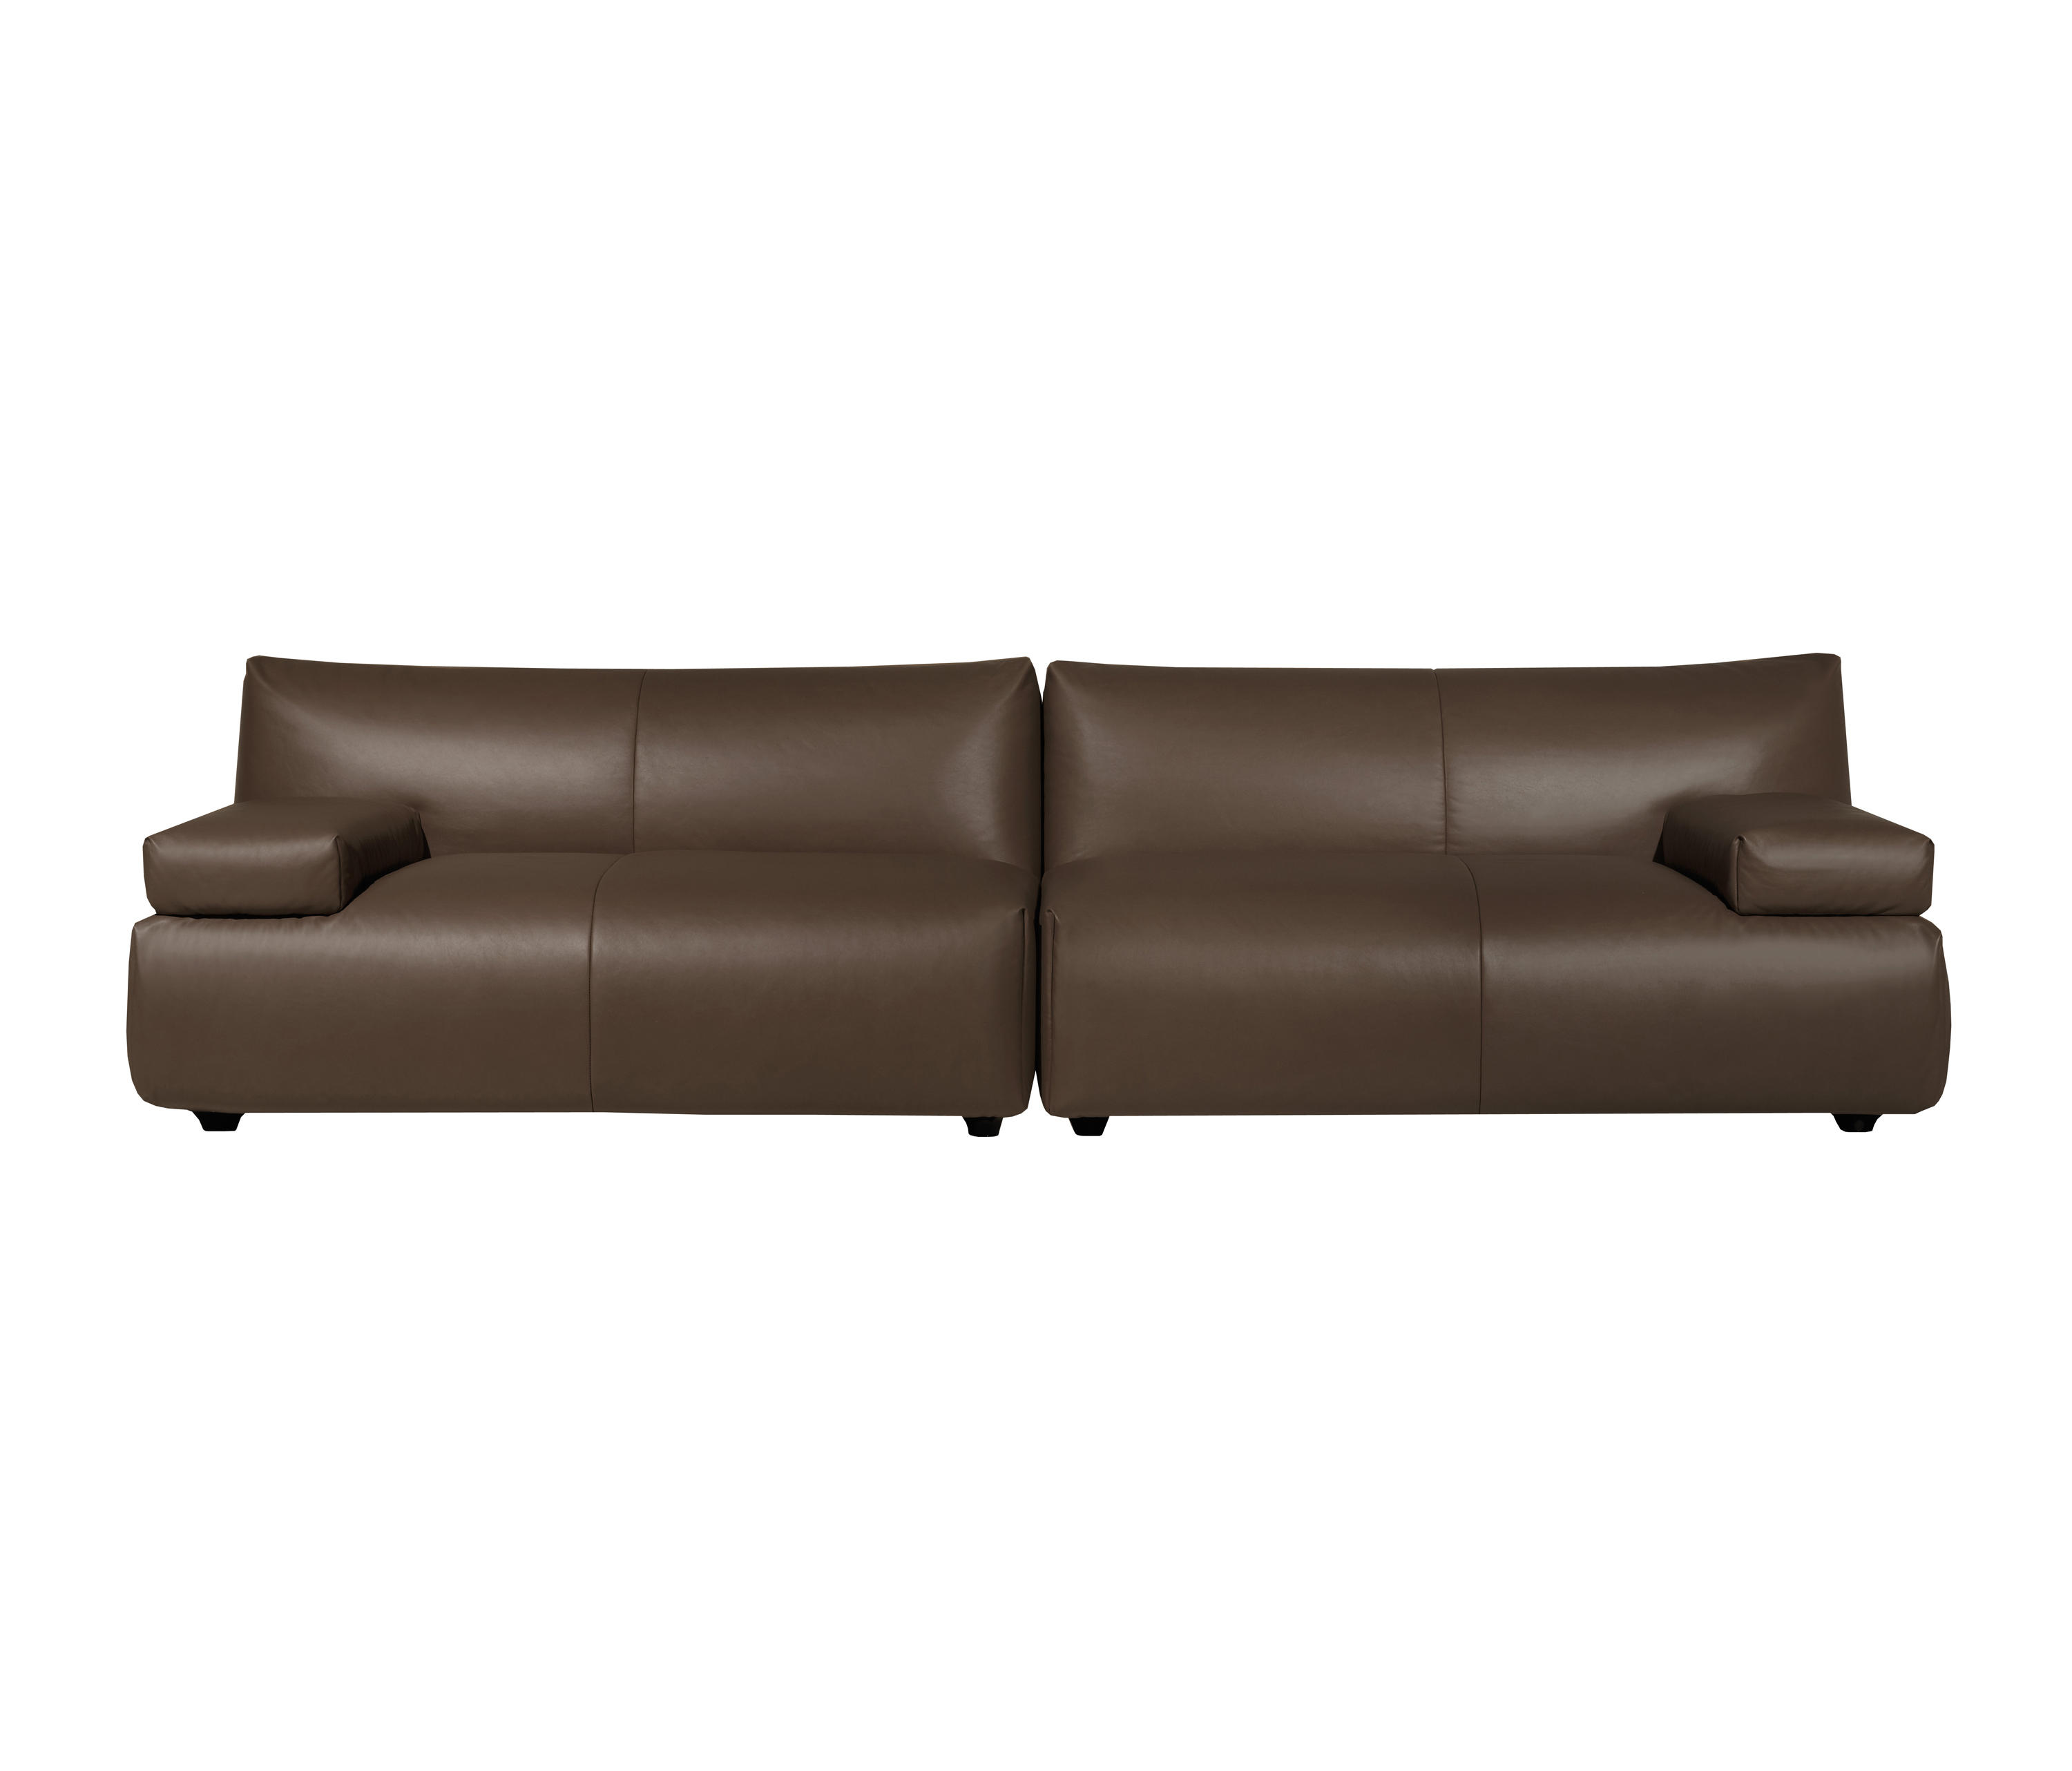 sofas living american sofa red discount sierra couch freight chocolate sectional brown rooms tan sectionals couches